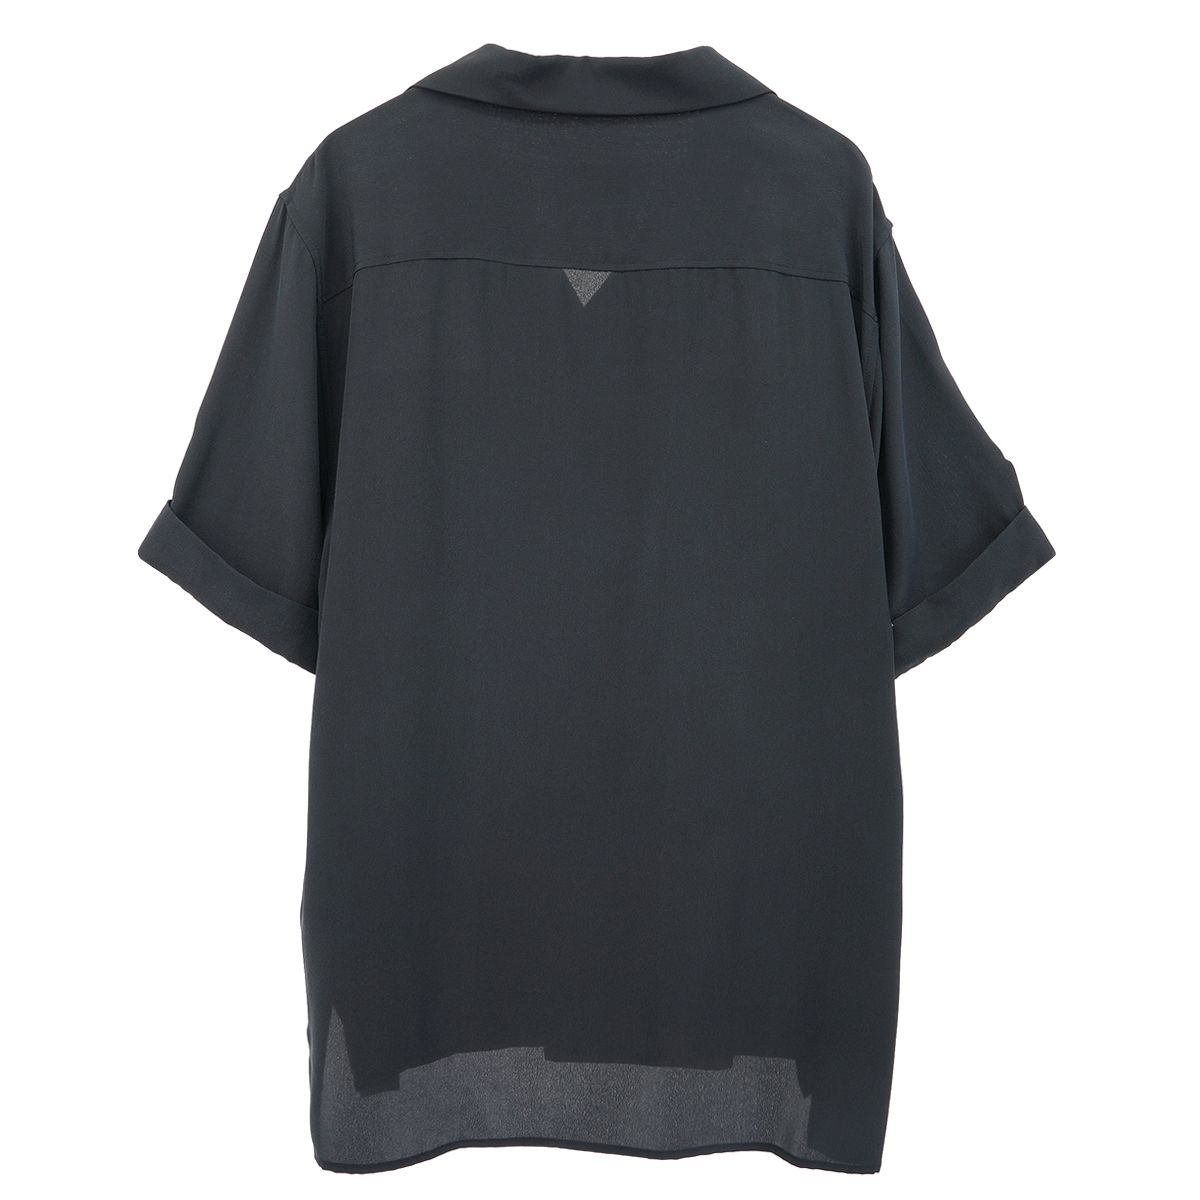 EQUIPMENT THE SHORT SLEEVE ORIGINAL / 097 : BLACK